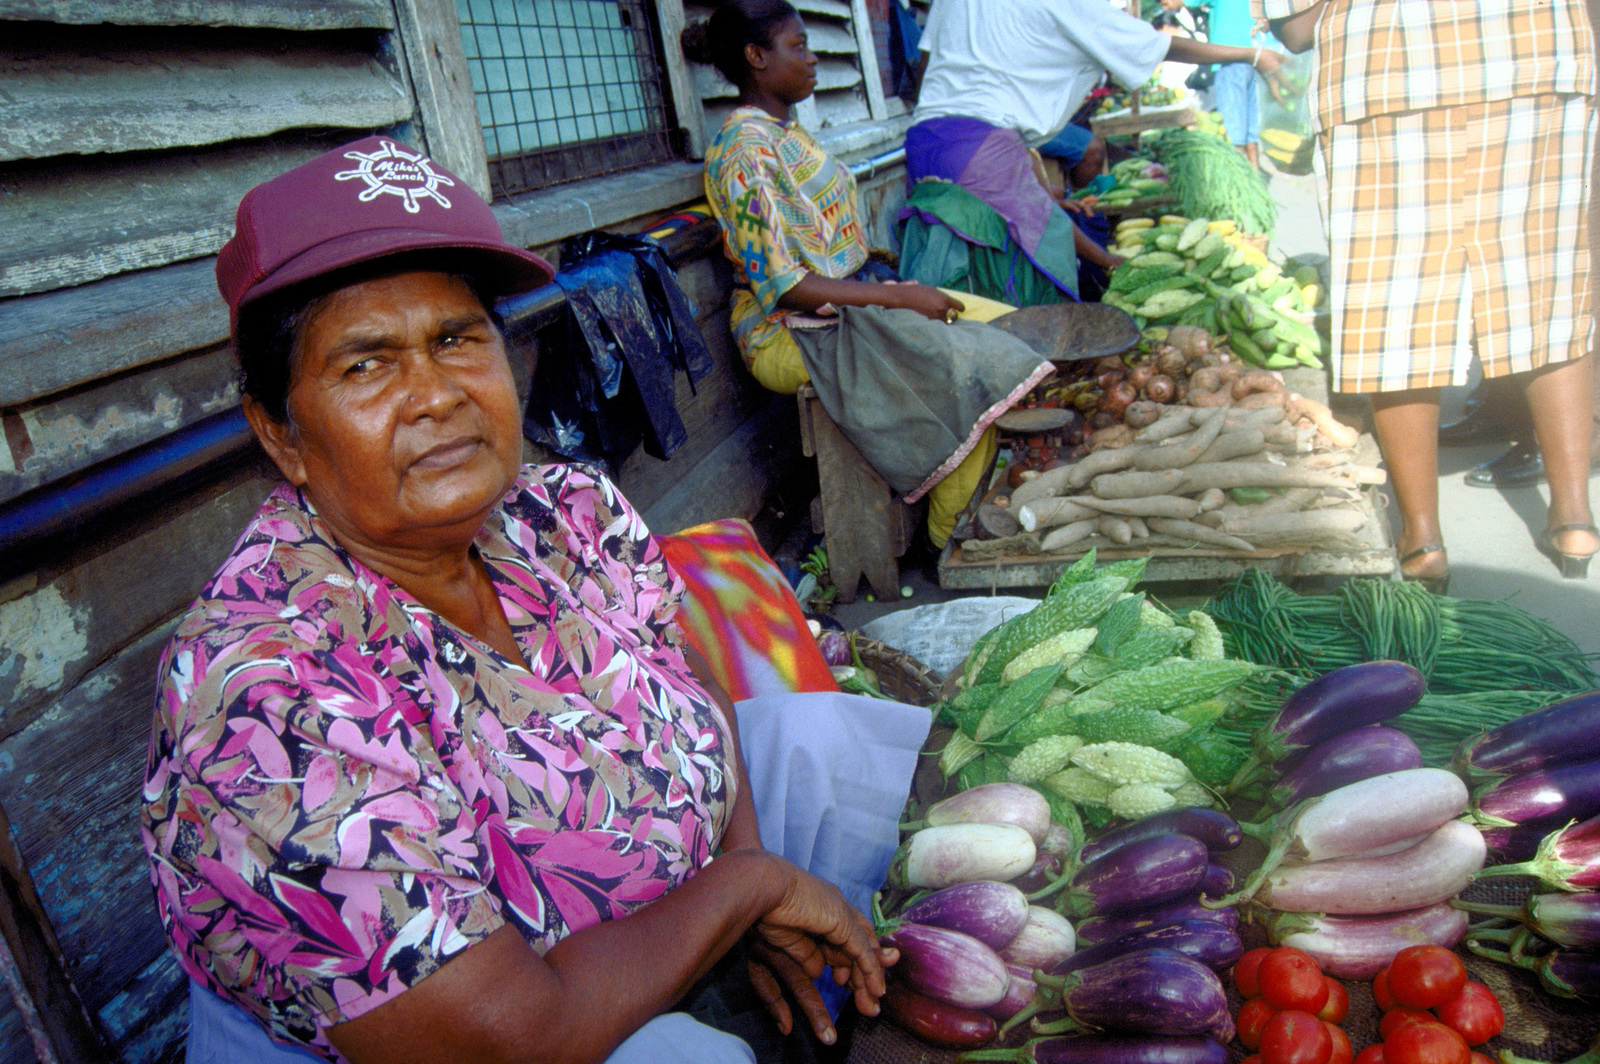 A Guyanese woman sells her fresh produce at Stabroek Market, a major indoor/outdoor shopping area in downtown Georgetown. Her produce was available for purchase by participants of New Horizon '97, first combined humanitarian and civic assistance exercise conducted between the United States and Guyana. Military personnel from the Air Force, Air Force Reserve & National Guard, Army, Army National Guard and Marine Corps participated in the exercise which included engineering and medical readiness training